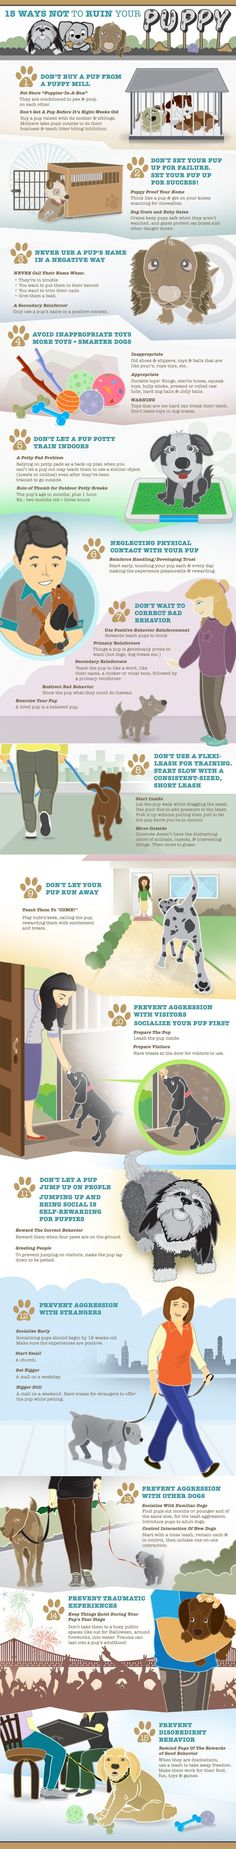 Pupy Training Treats - Pupy Training Treats - Eye Makeup - Puppy Training Graphic Kaufmanns Puppy Training - Ten Different Ways of Eye Makeup - How to train a puppy? - How to train a puppy? Puppy Training Tips, Training Your Dog, Potty Training, Training Meme, Leash Training, Safety Training, Training Schedule, Crate Training, Training Classes